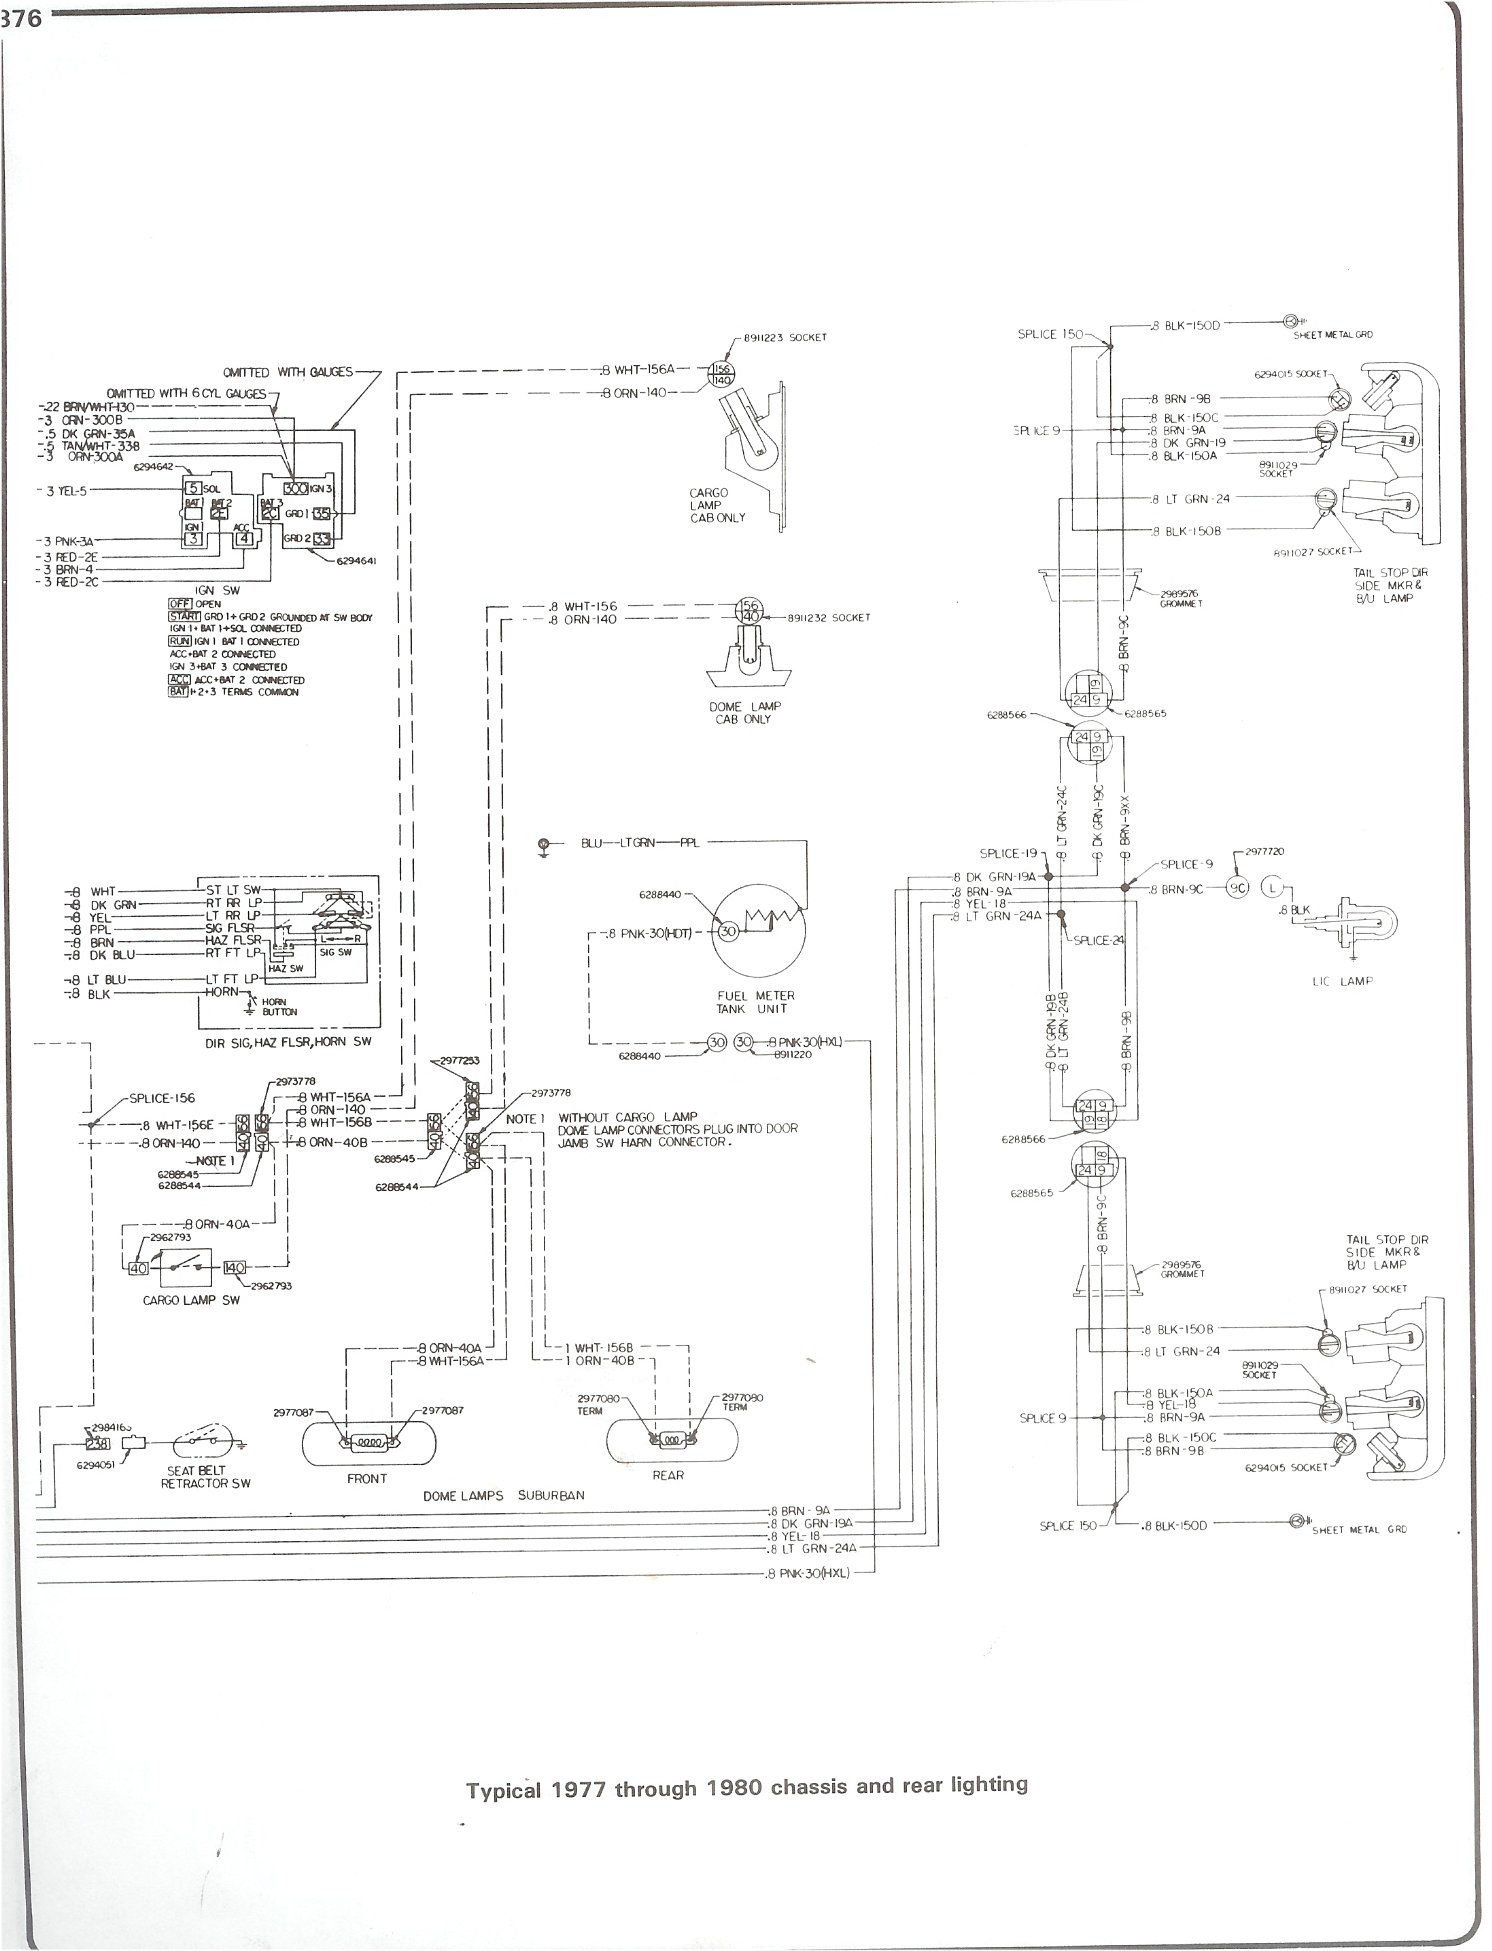 Wiring Diagram 77 Chevy Blazer House Symbols 1998 Fuse Box Complete 73 87 Diagrams Rh Forum 87chevytrucks Com 1989 Trailblazer Fuel Pump